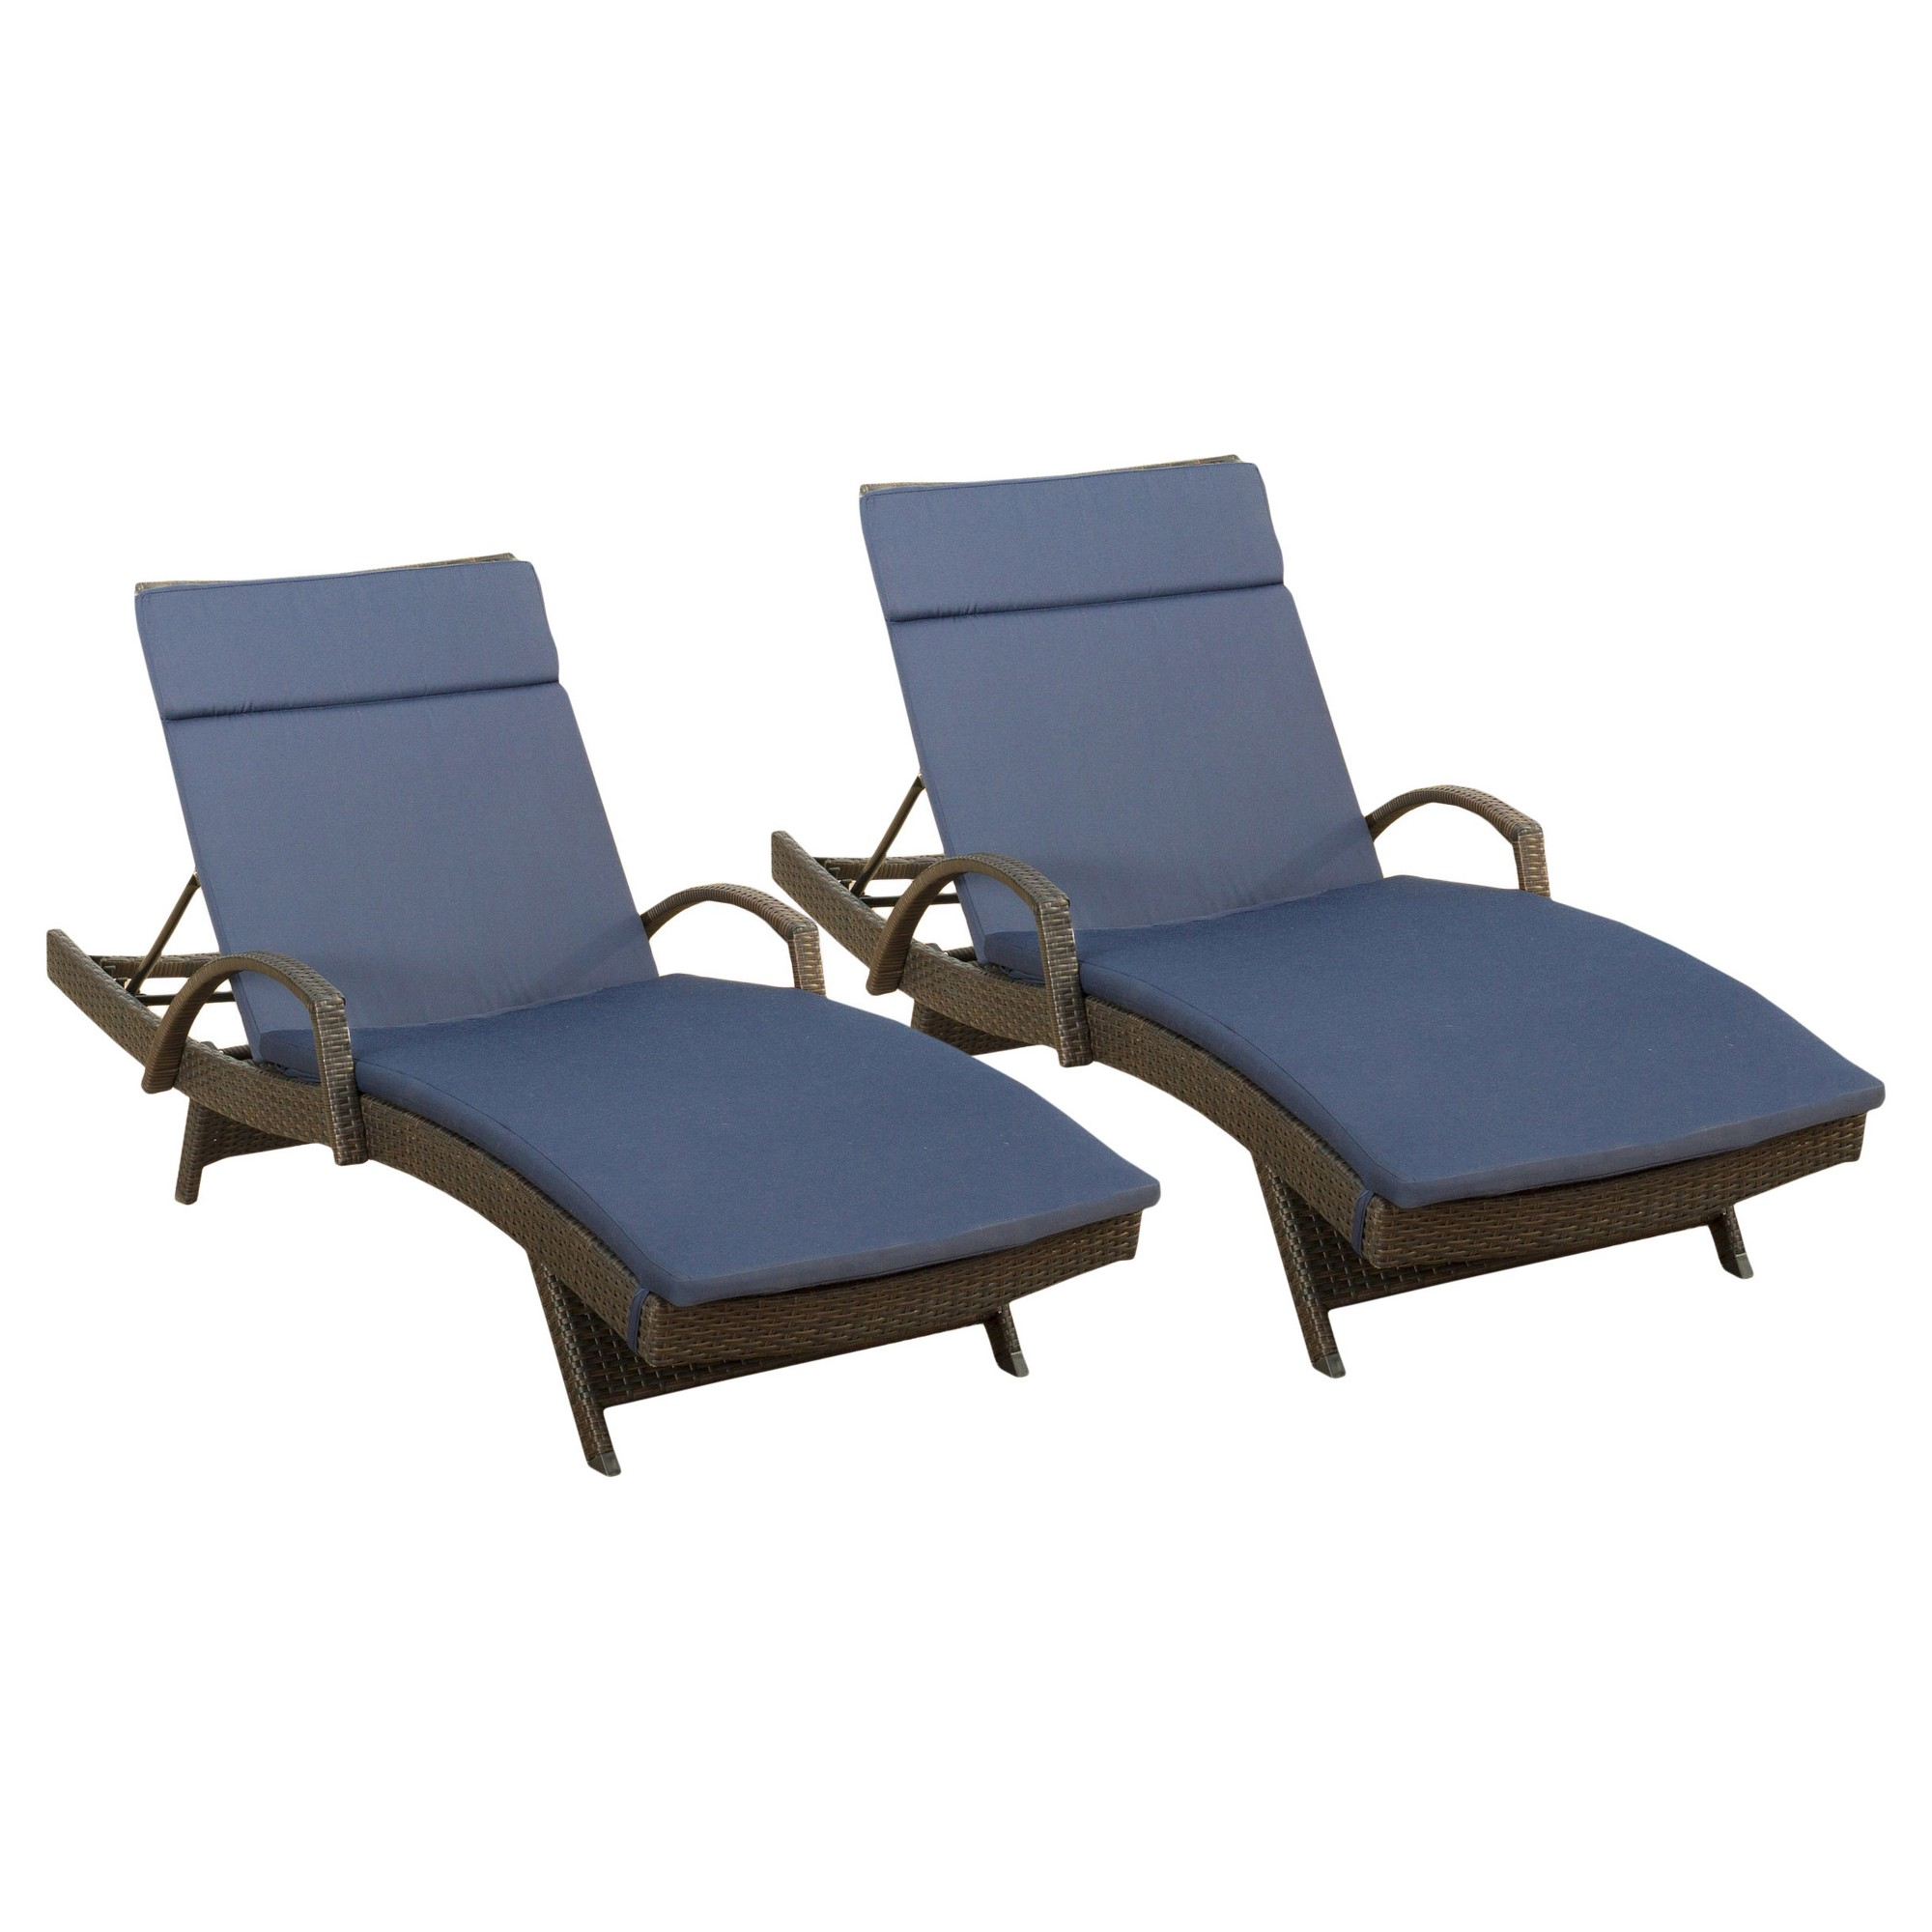 Salem Set of 2 Brown Wicker Adjustable Chaise Lounge with Arms